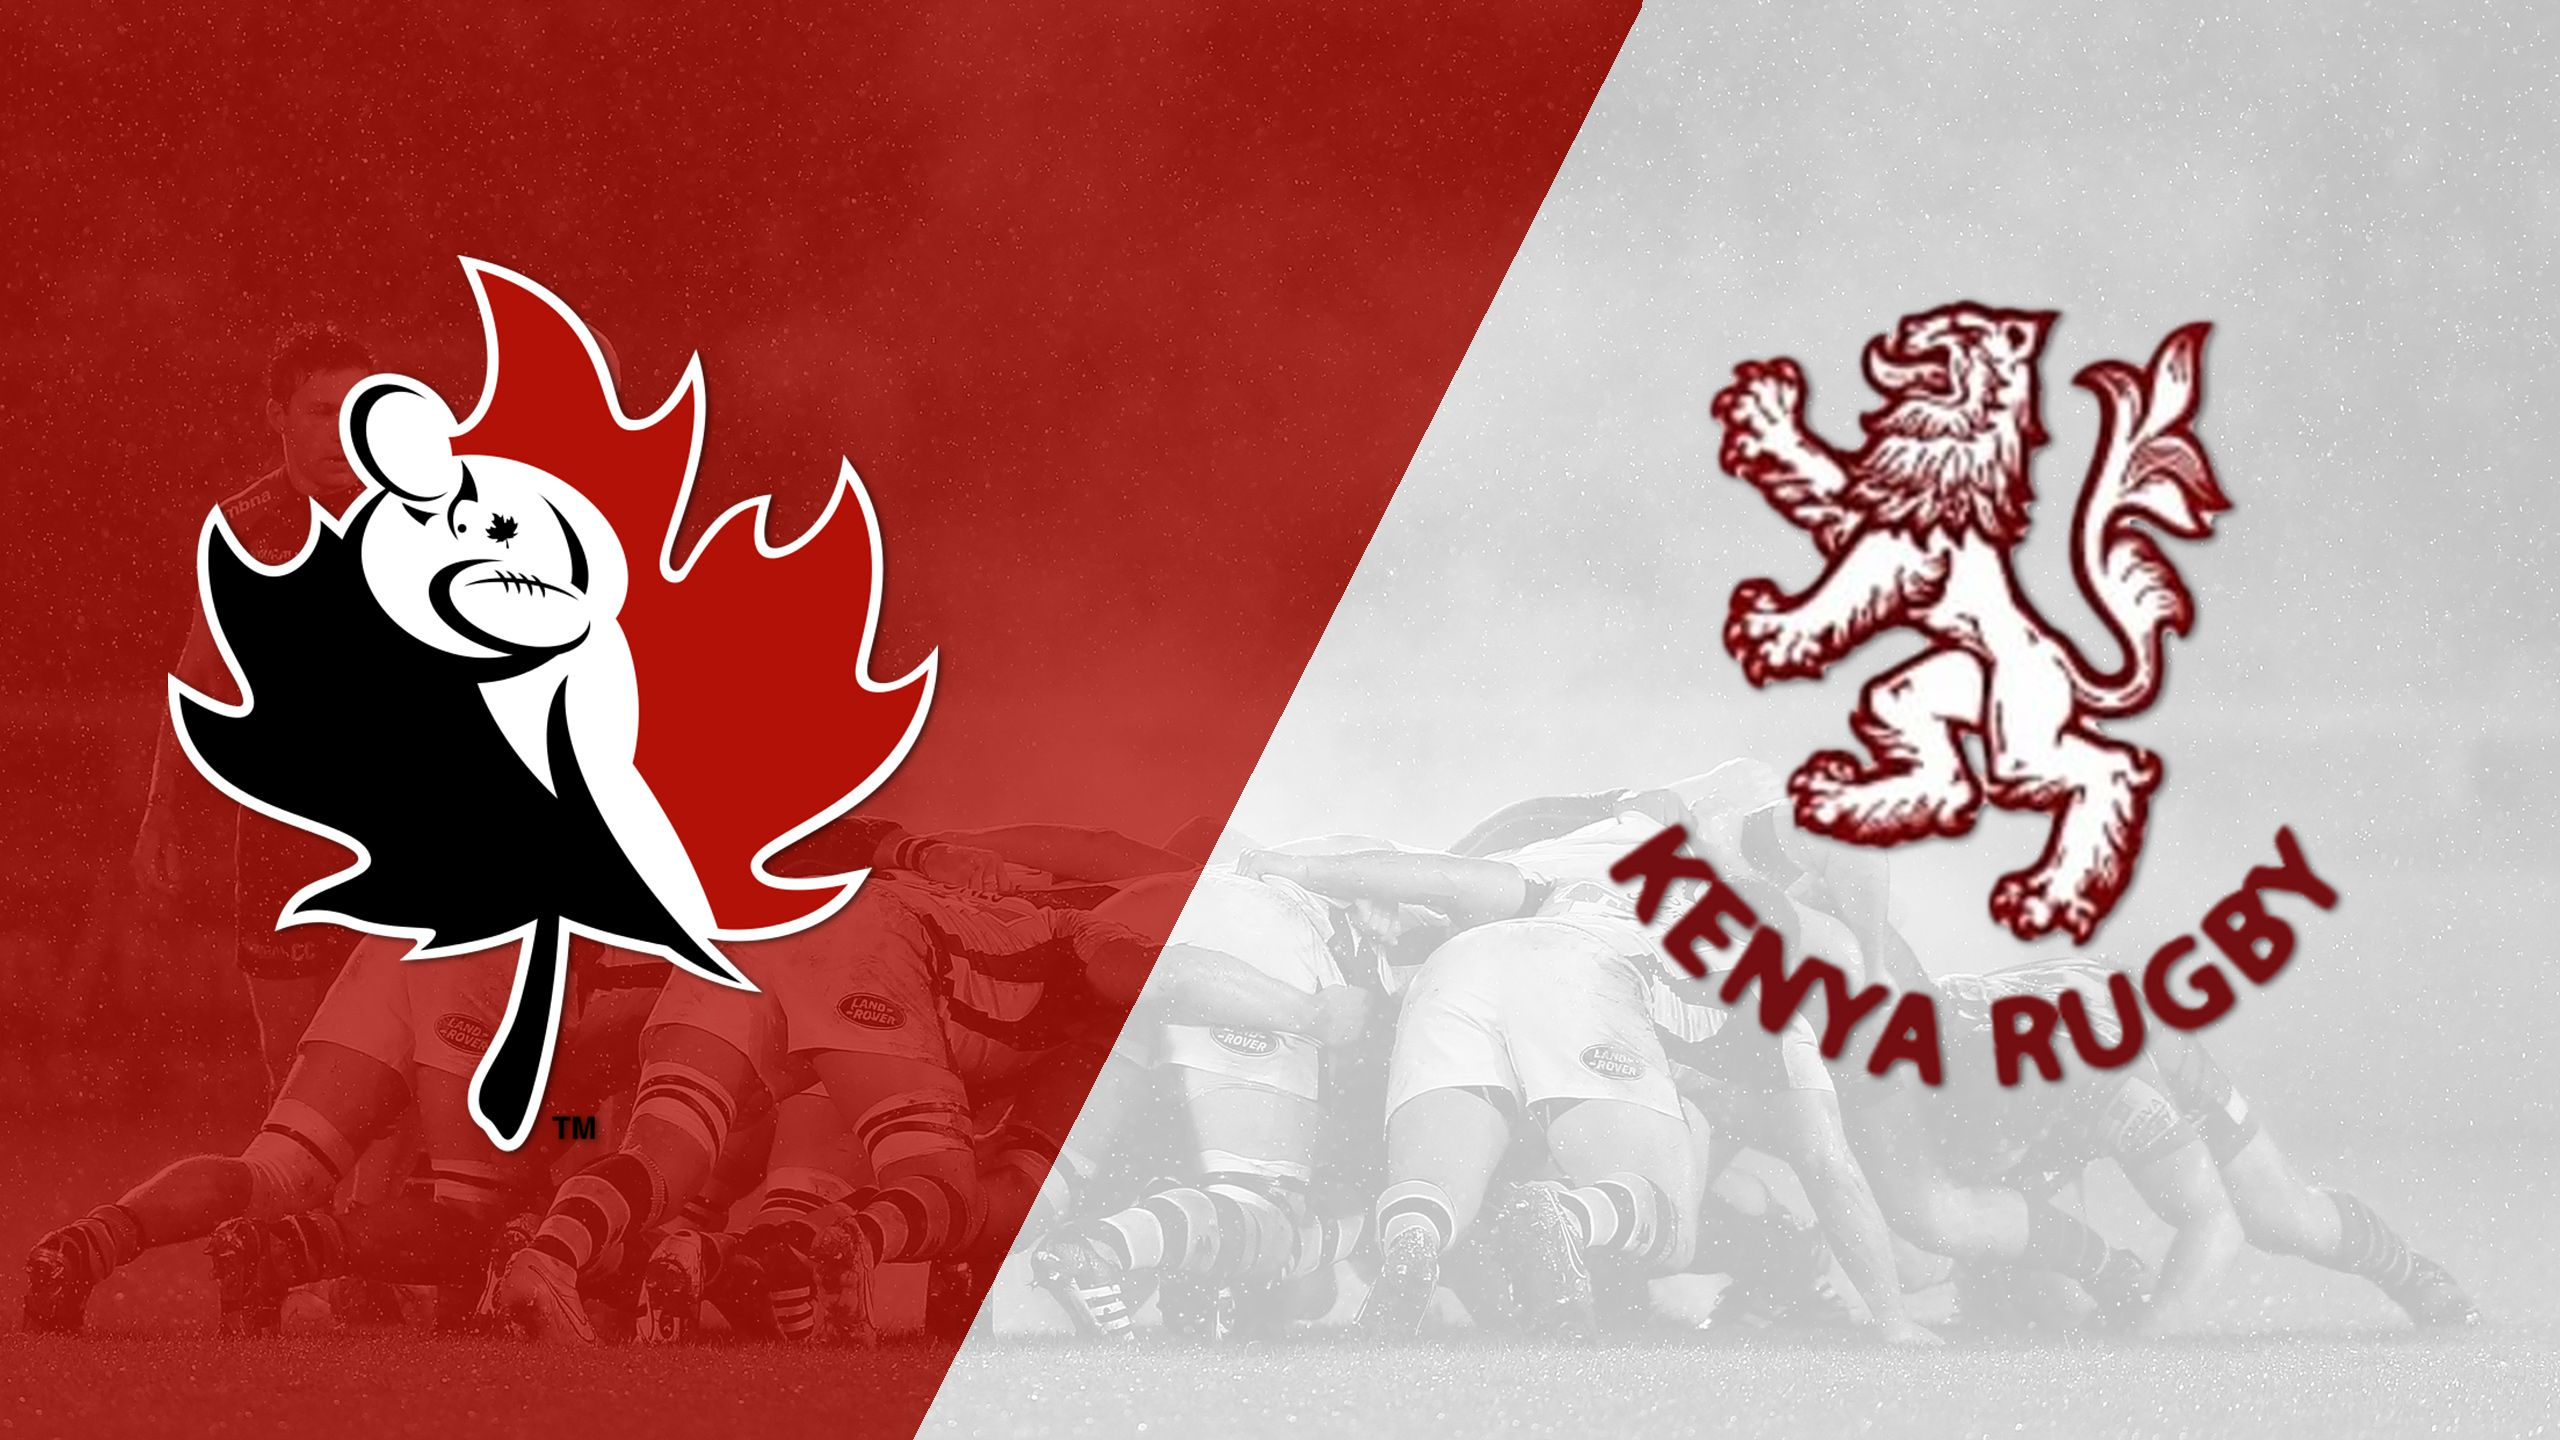 Canada vs. Kenya (World Rugby Sevens Series)